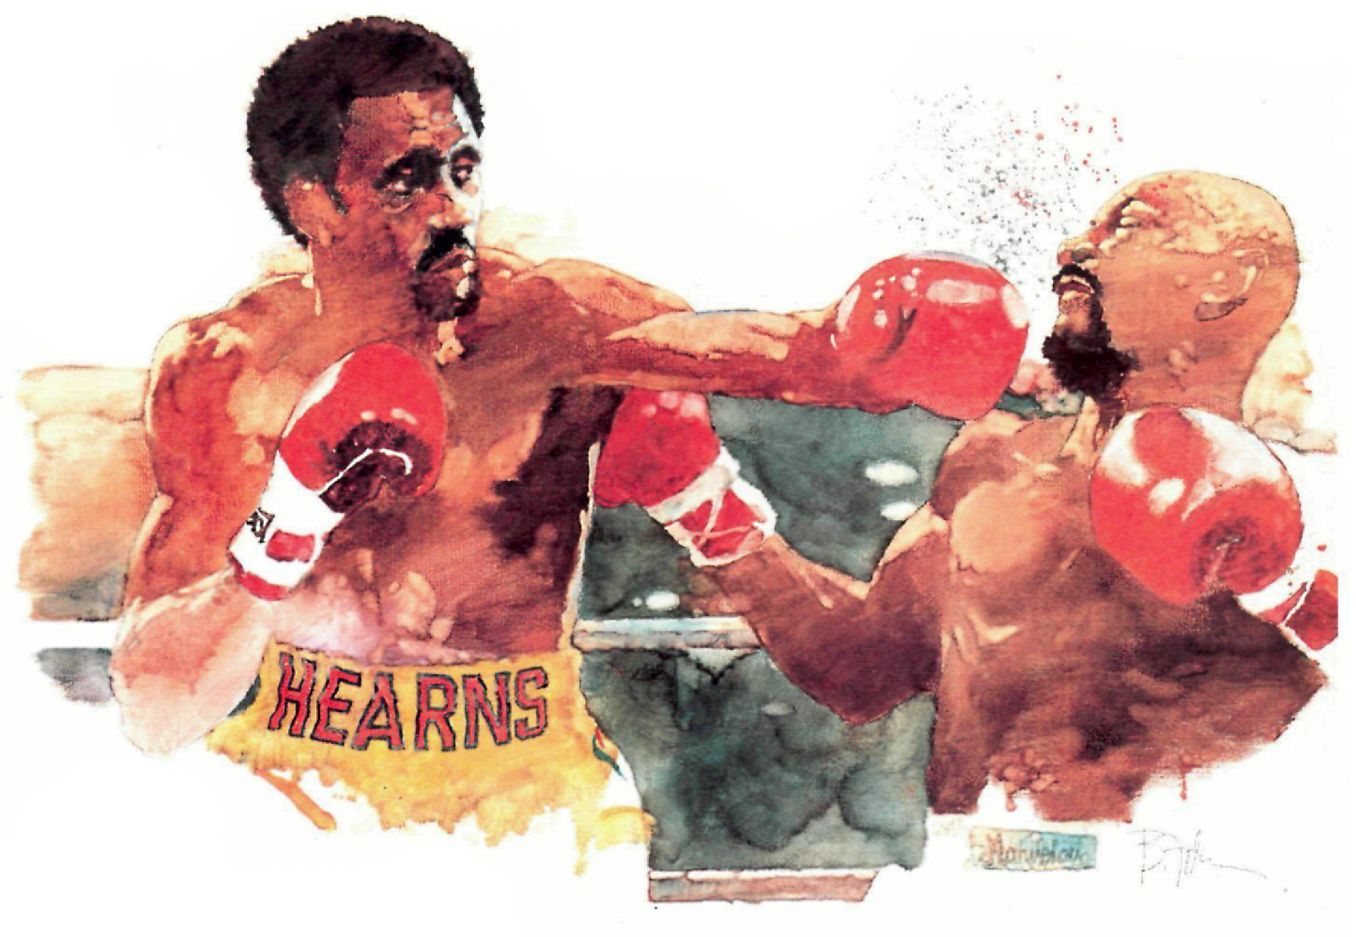 Marvin Hagler Vs Thomas Hearns Painting By Bart Forbes 1985 Boxing Posters Sports Art Boxing Images